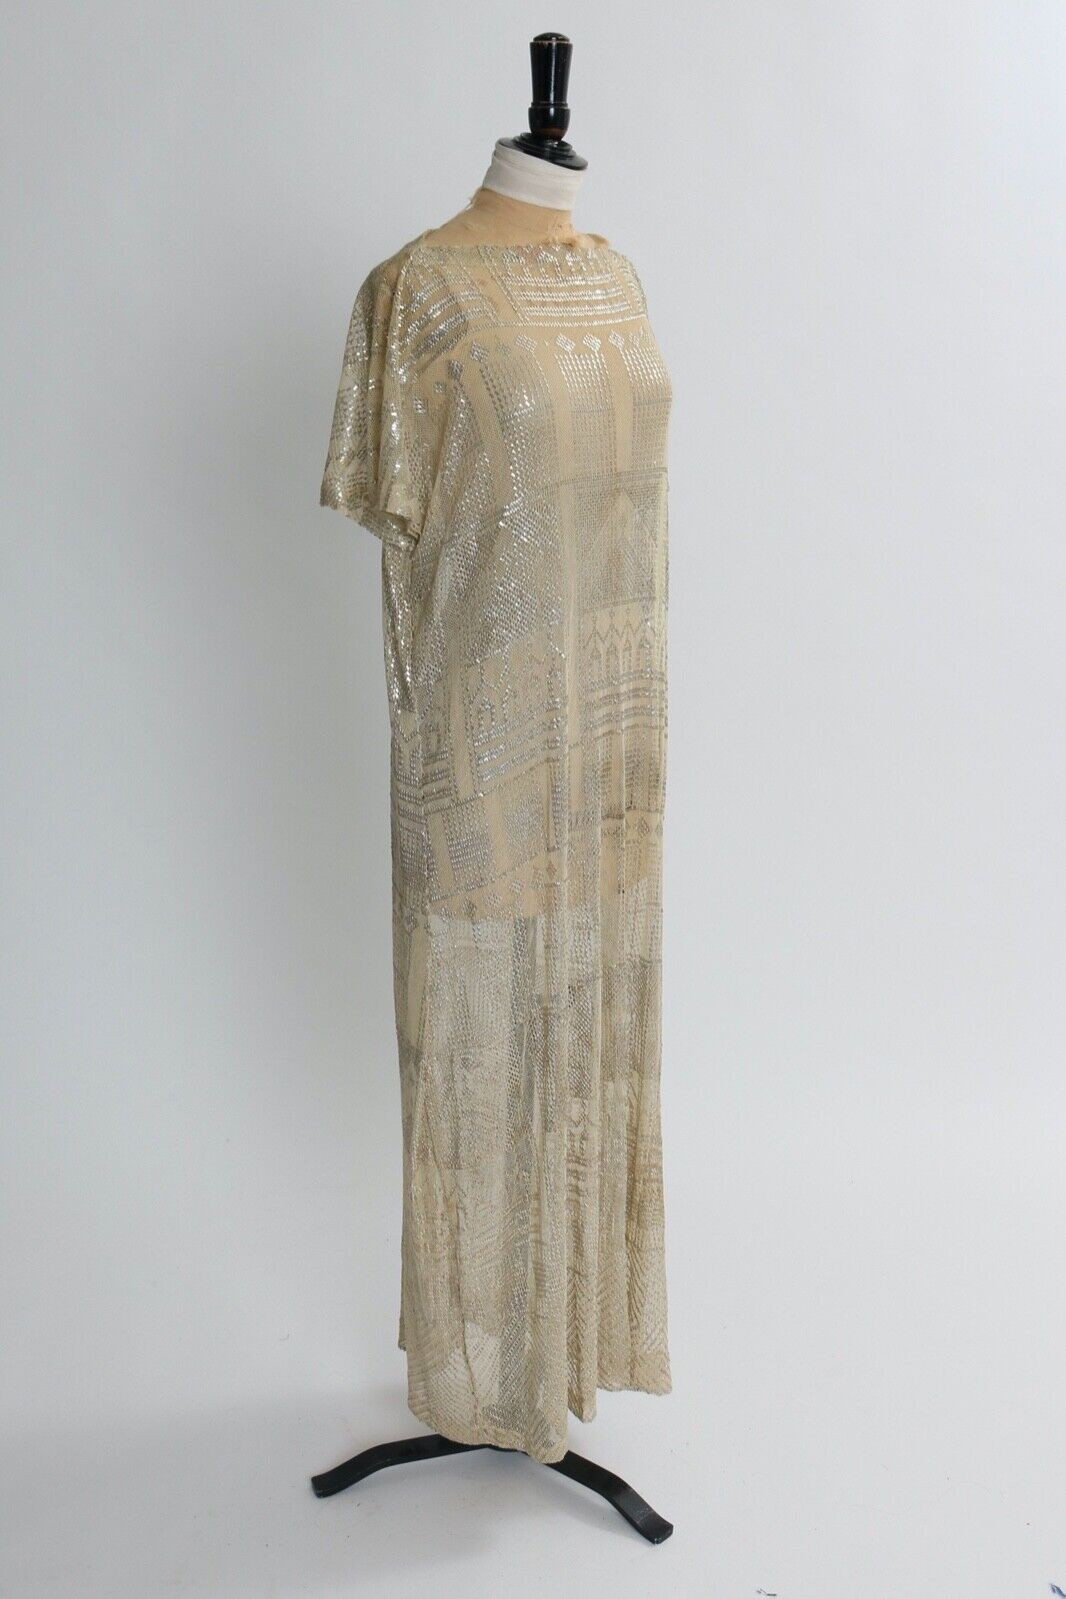 Vintage antique original art deco Assuit Egyptian metal and mesh dress 1920s L